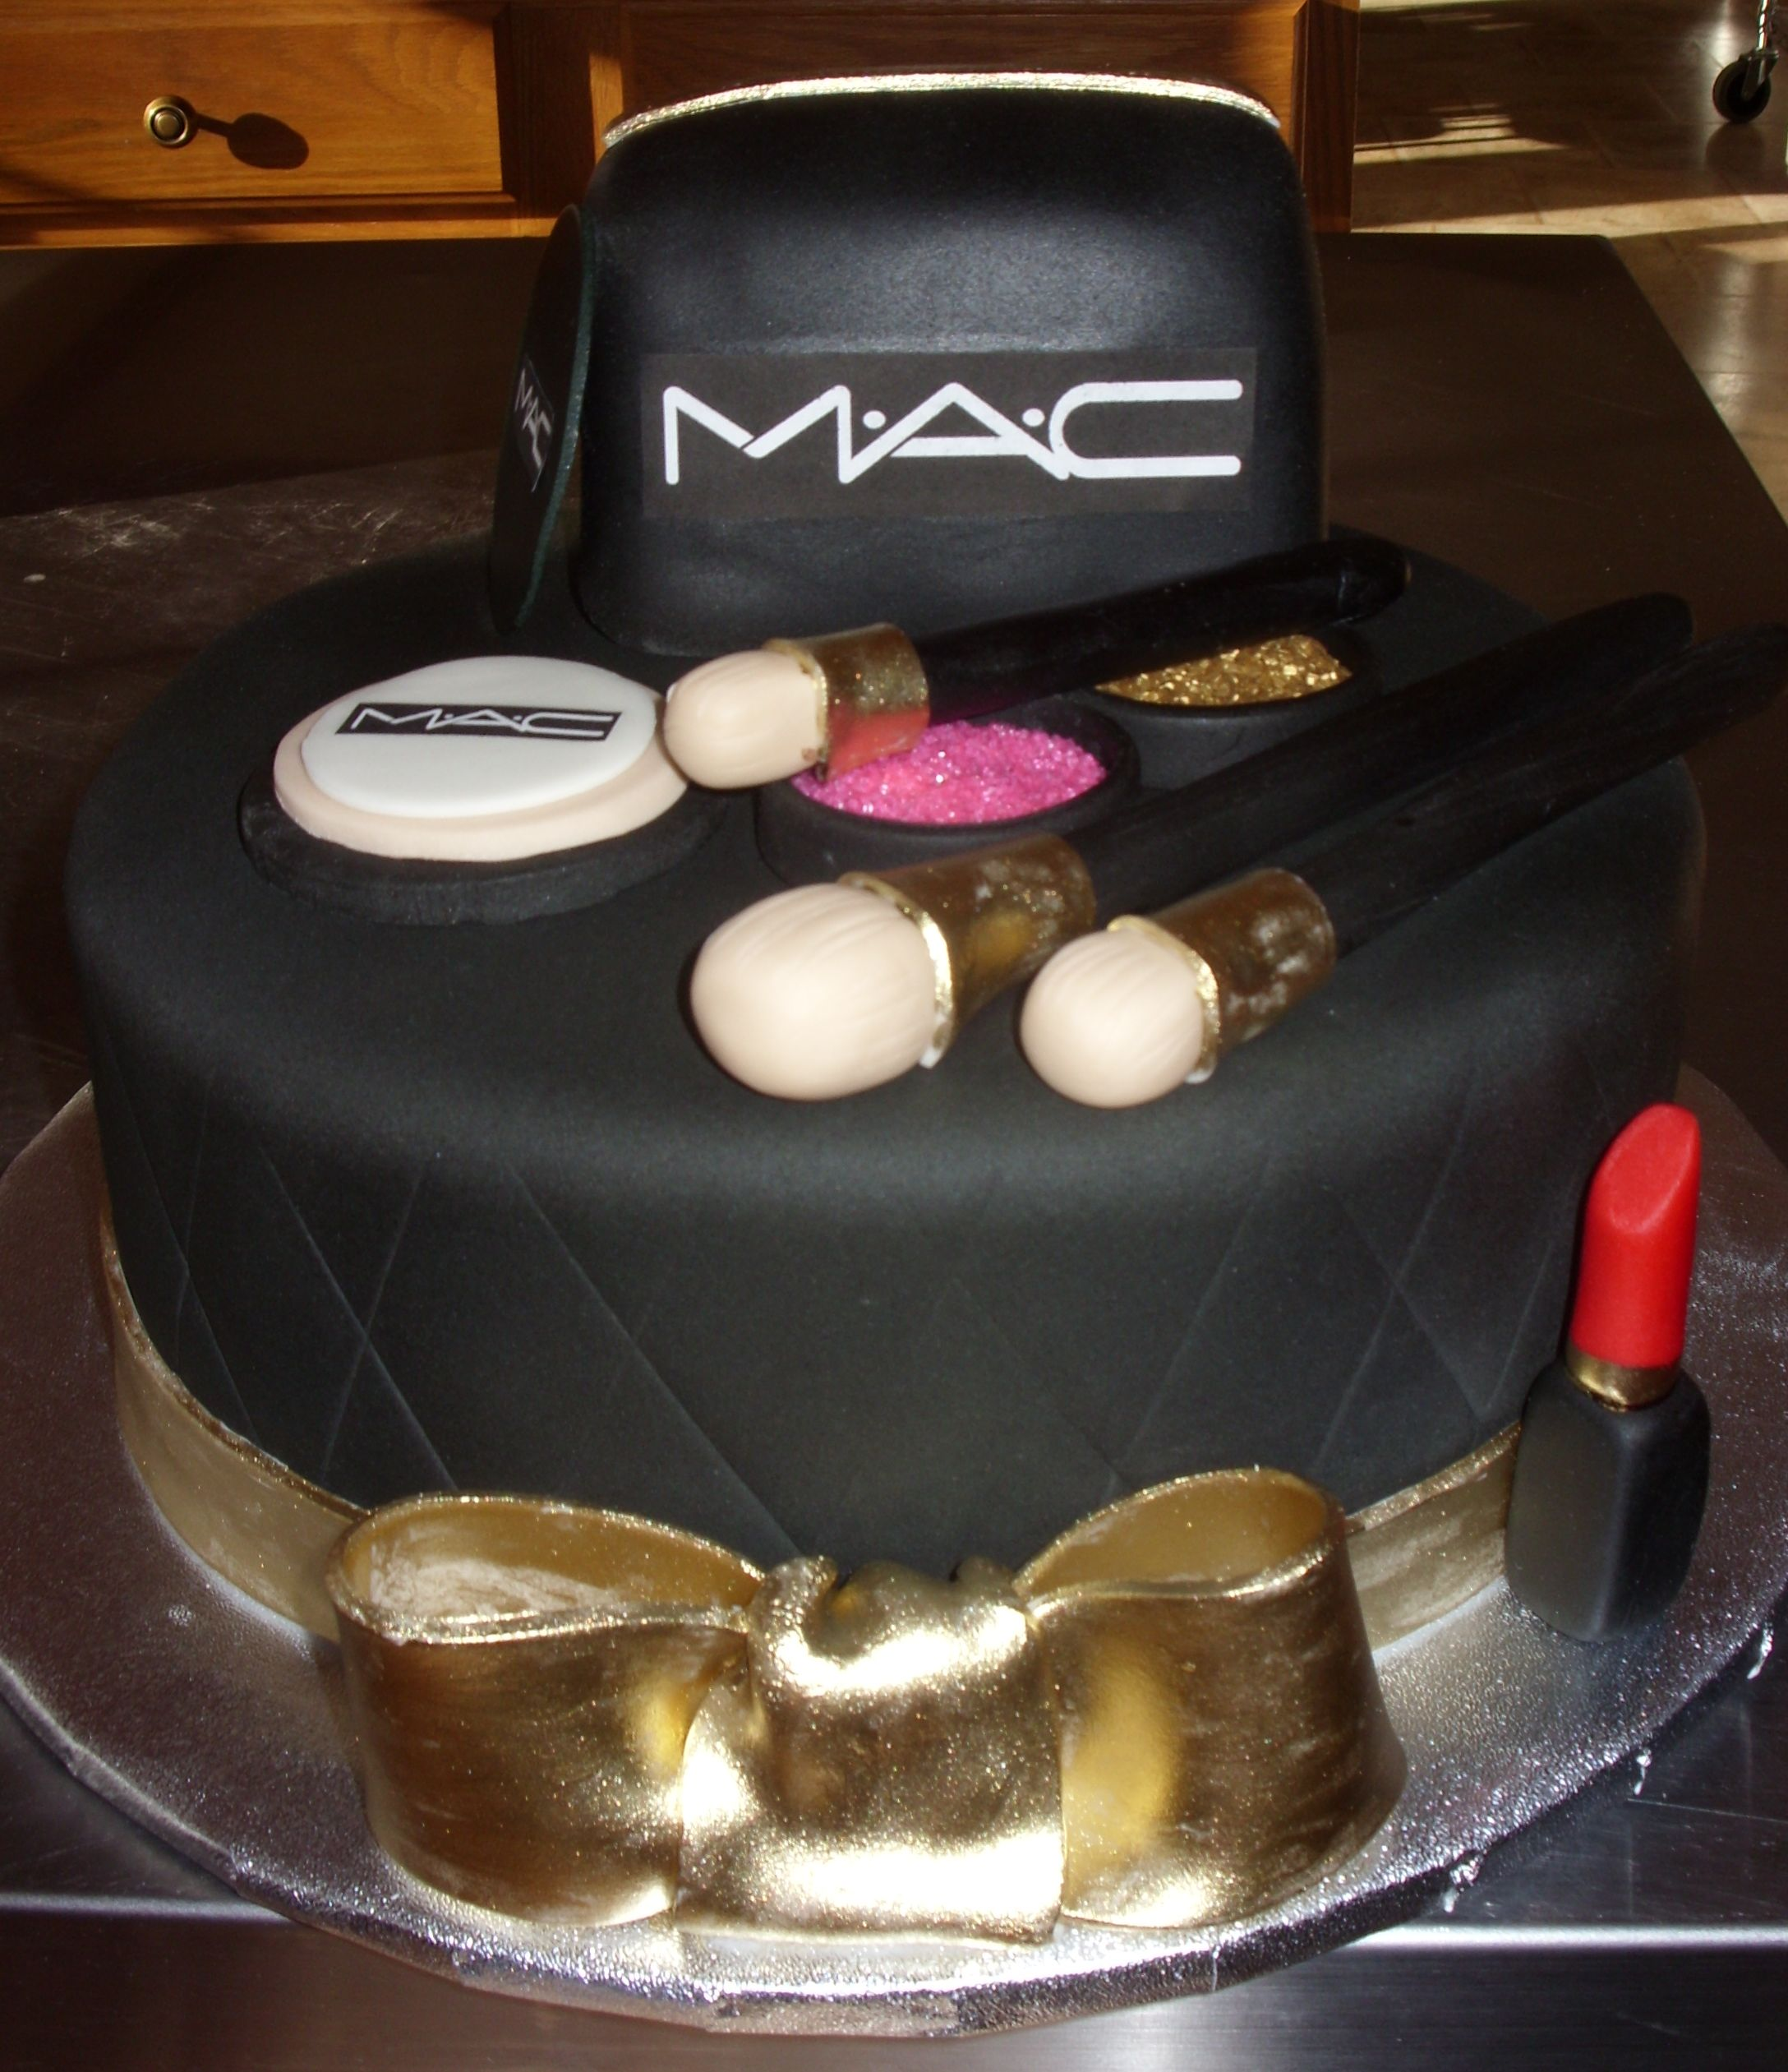 Mac Lipstick Cake Ideas The Art Of Beauty